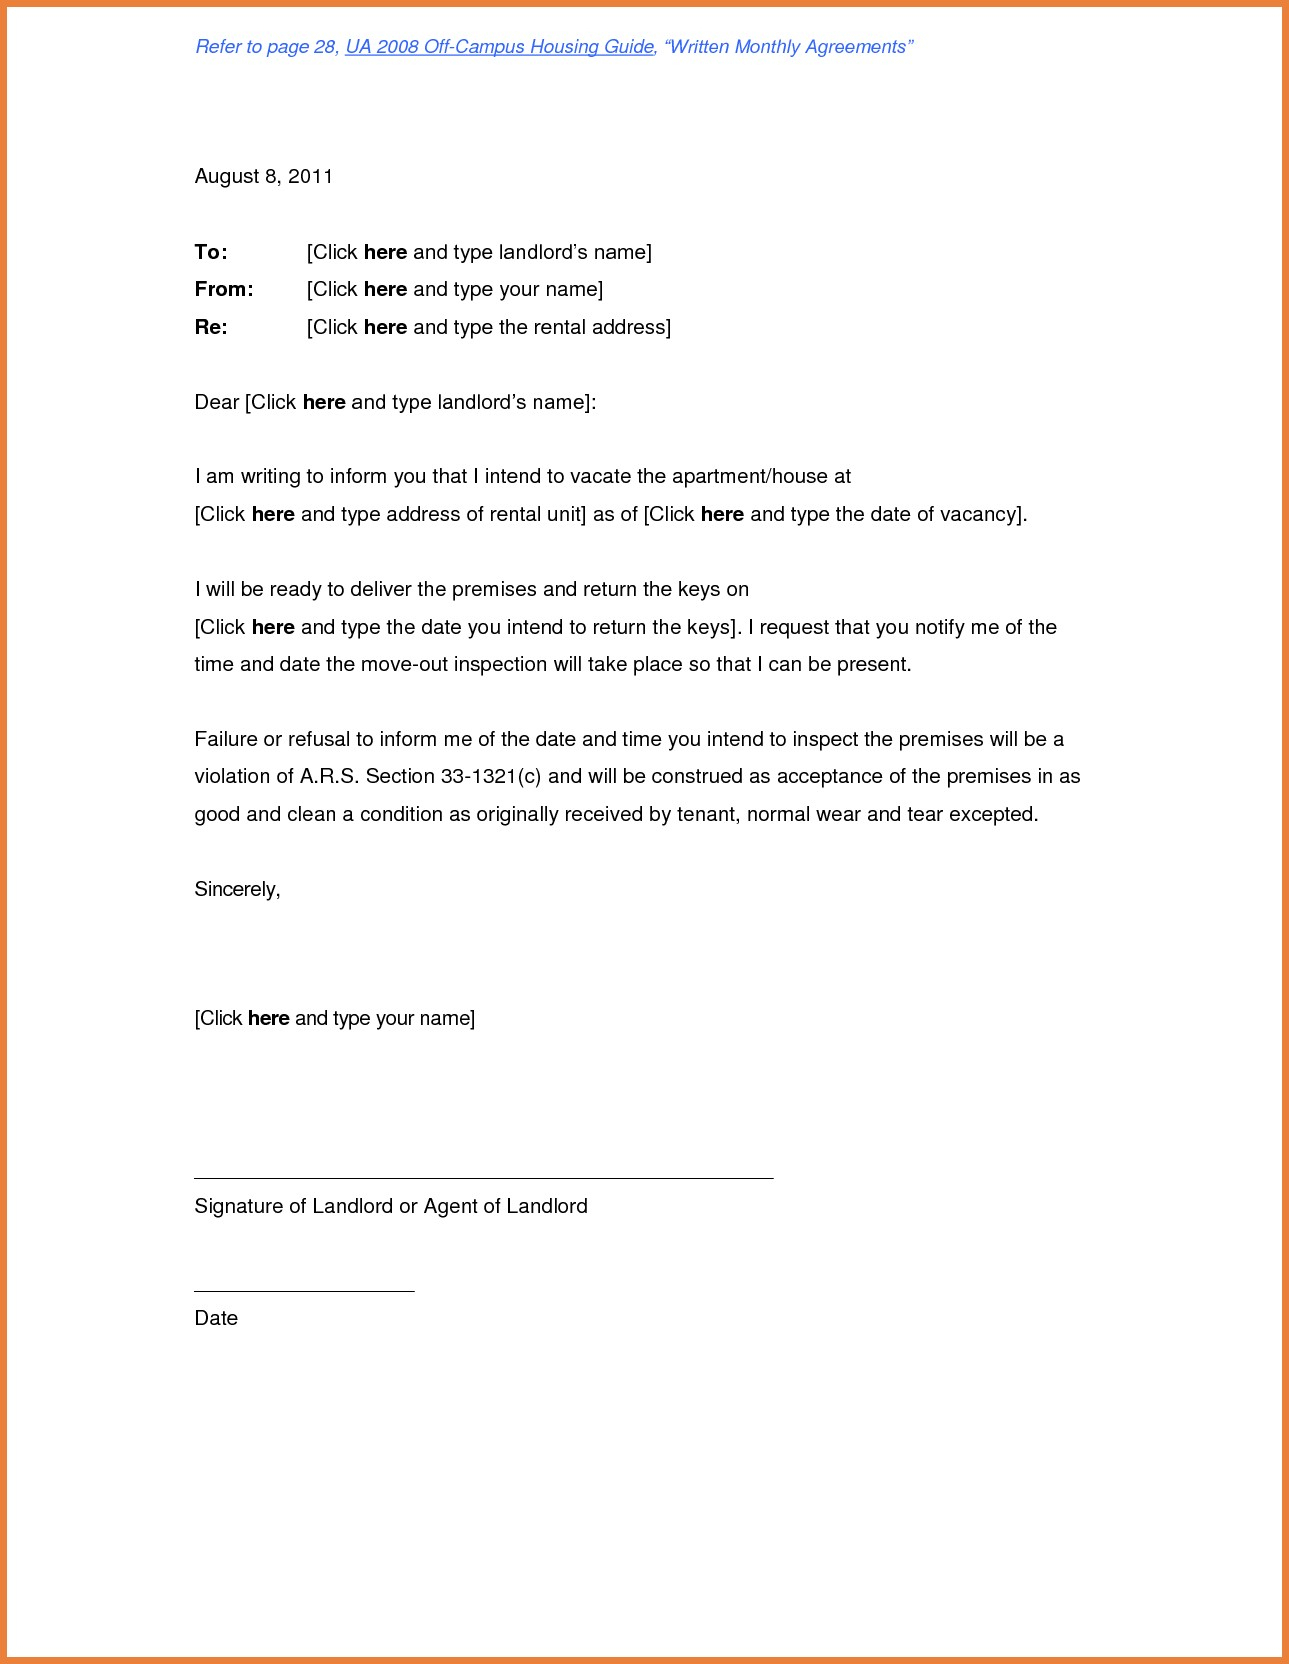 property inspection letter to tenant template Collection-Property Inspection Letter To Tenant Template Collection 5-b